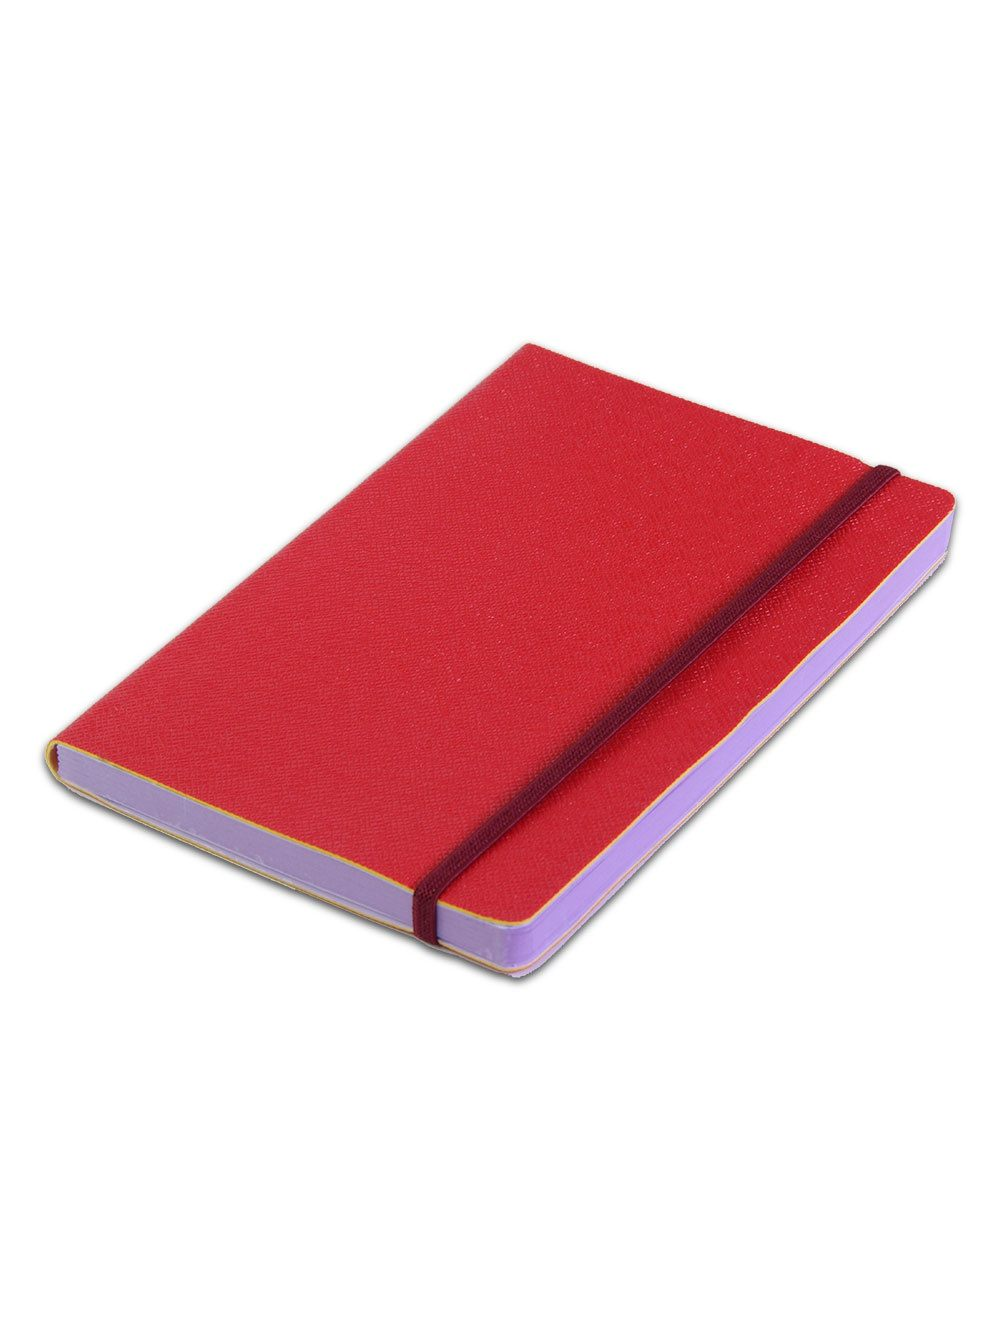 Journal Con Elastico 14,5 X 21 Cm - Coloured Internal Paper  - Cherry Red